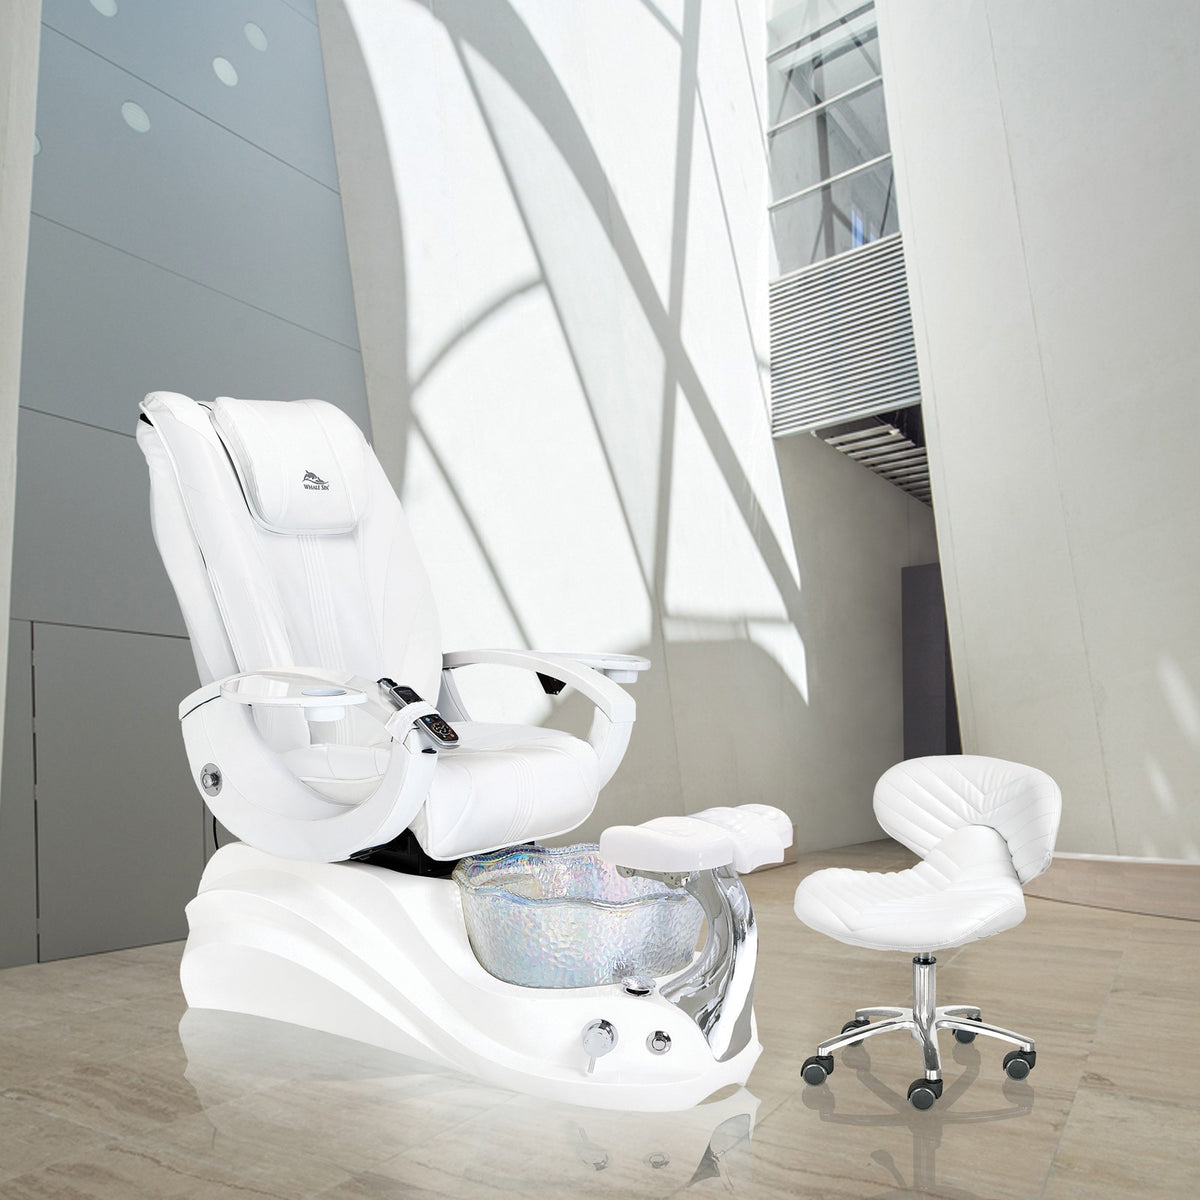 Whale Spa Whale Spa Pedicure Chair Crane White Edition with Free Trolley & Stool Pedicure Chair - ChairsThatGive